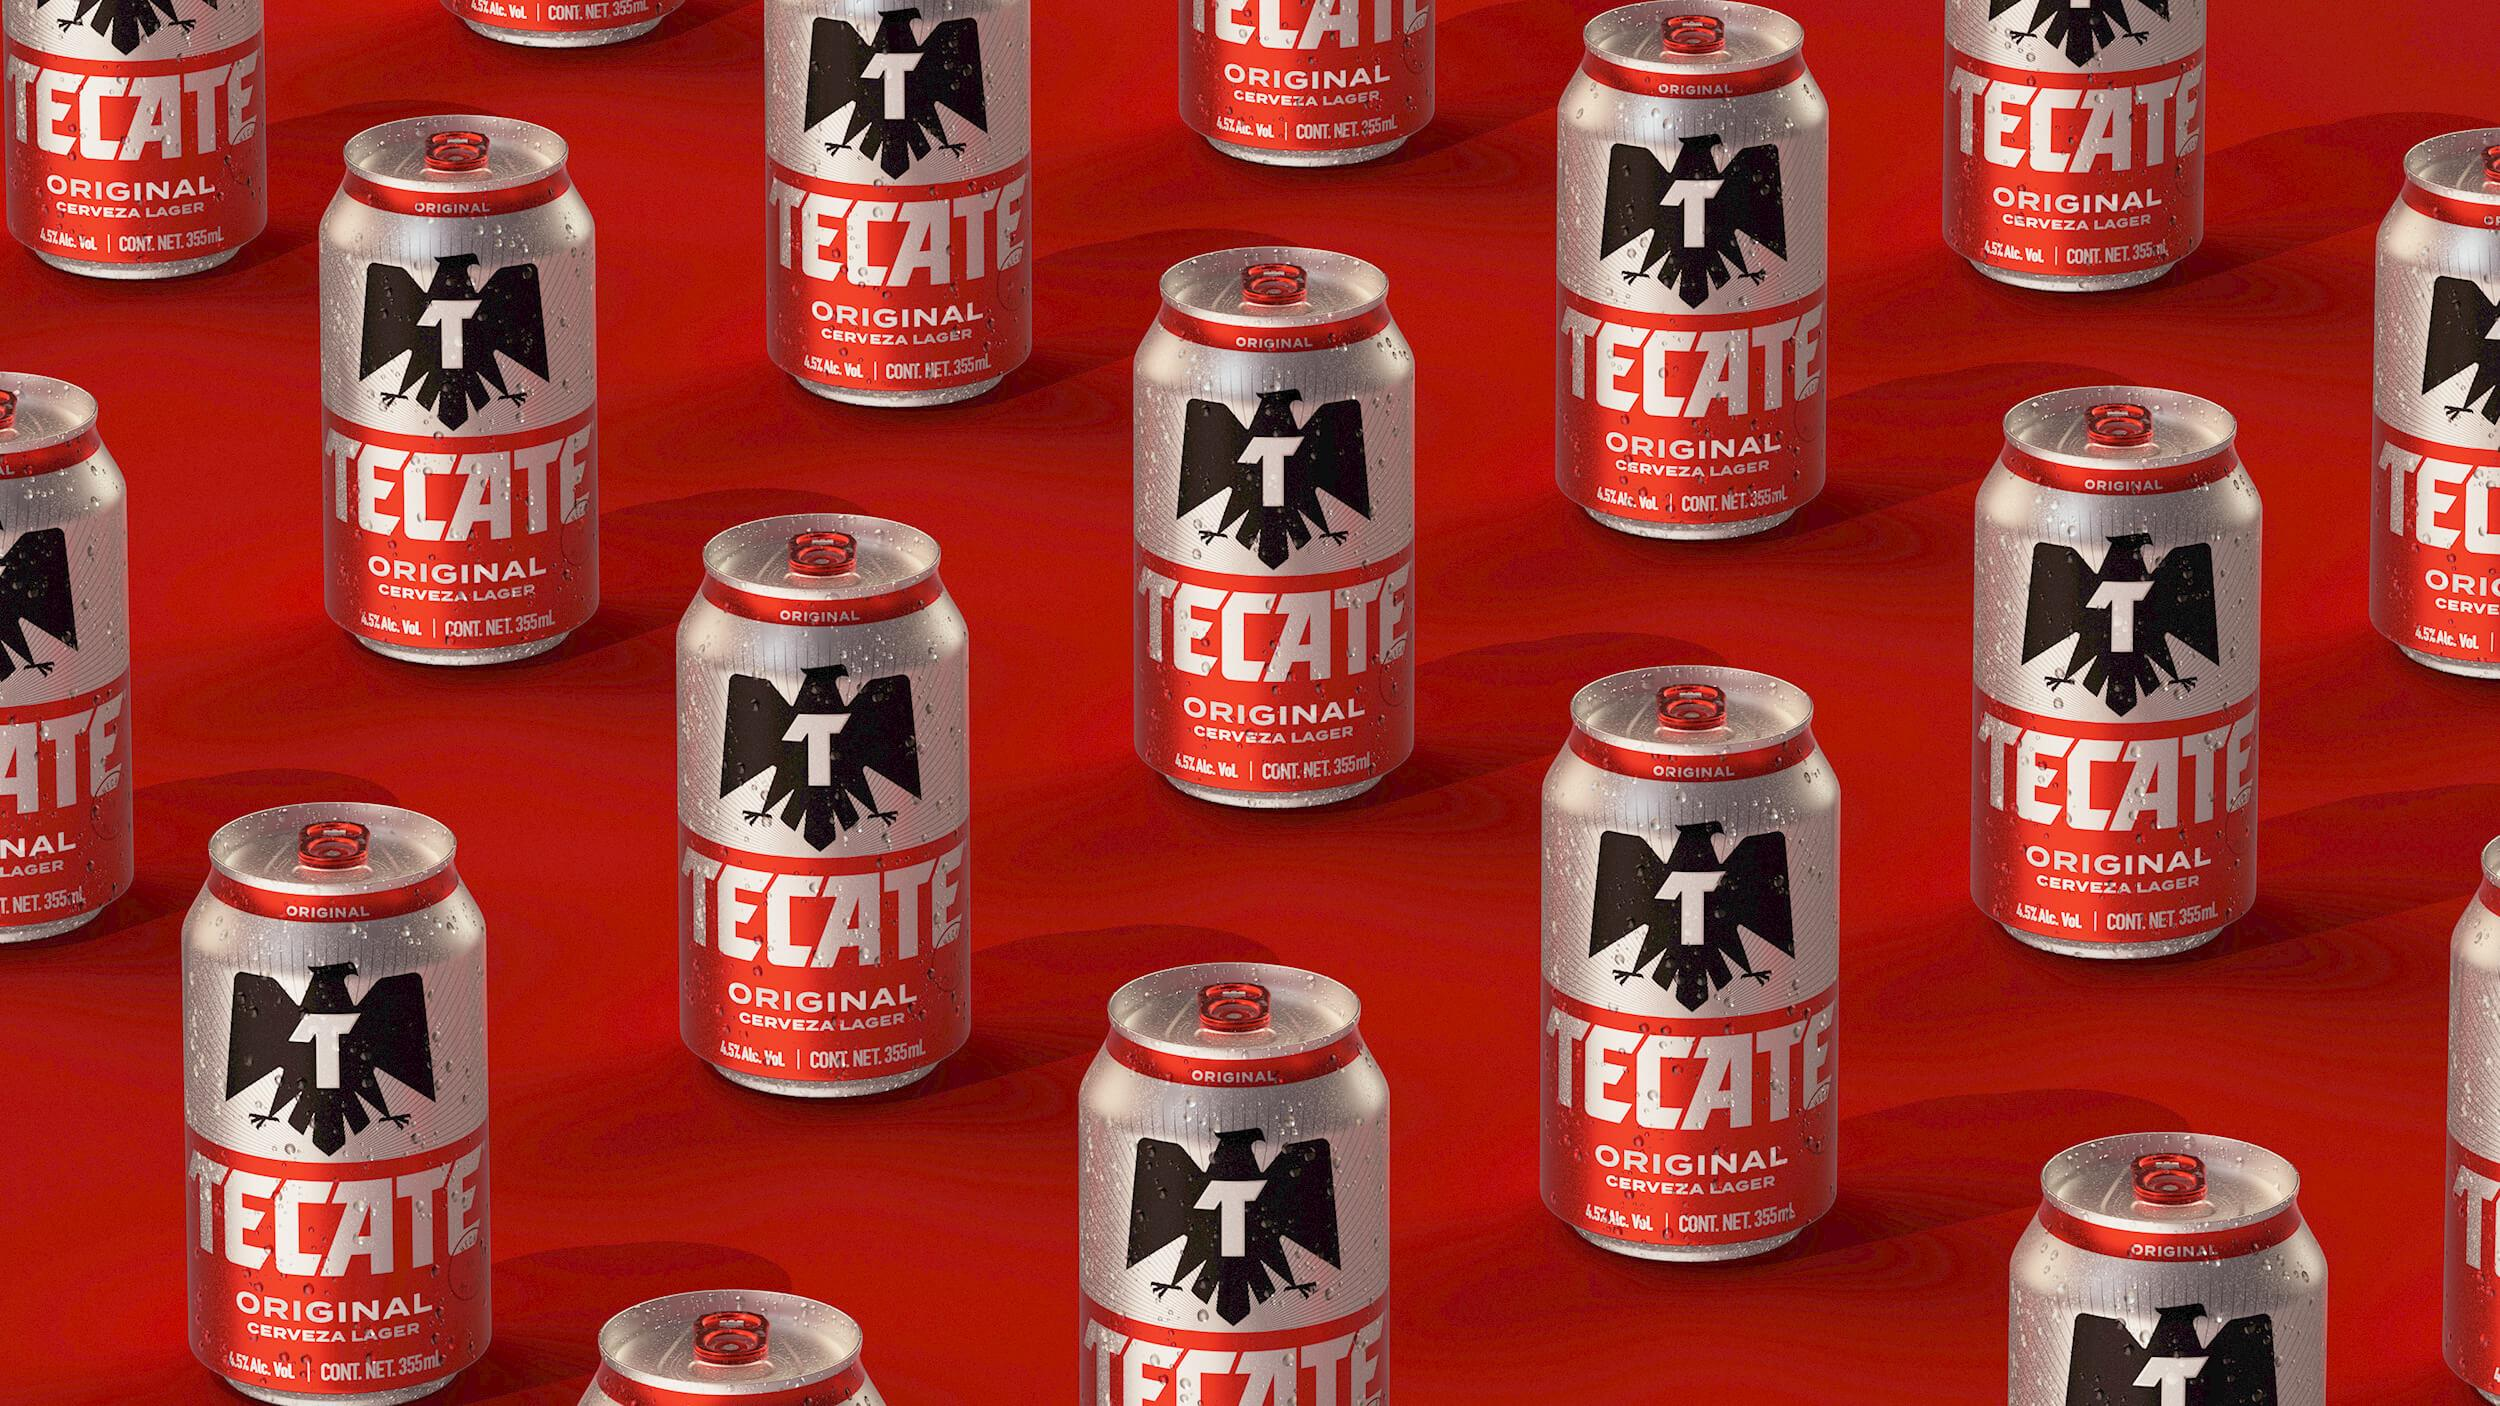 Tecate: Elevating a Brand to a Lifestyle